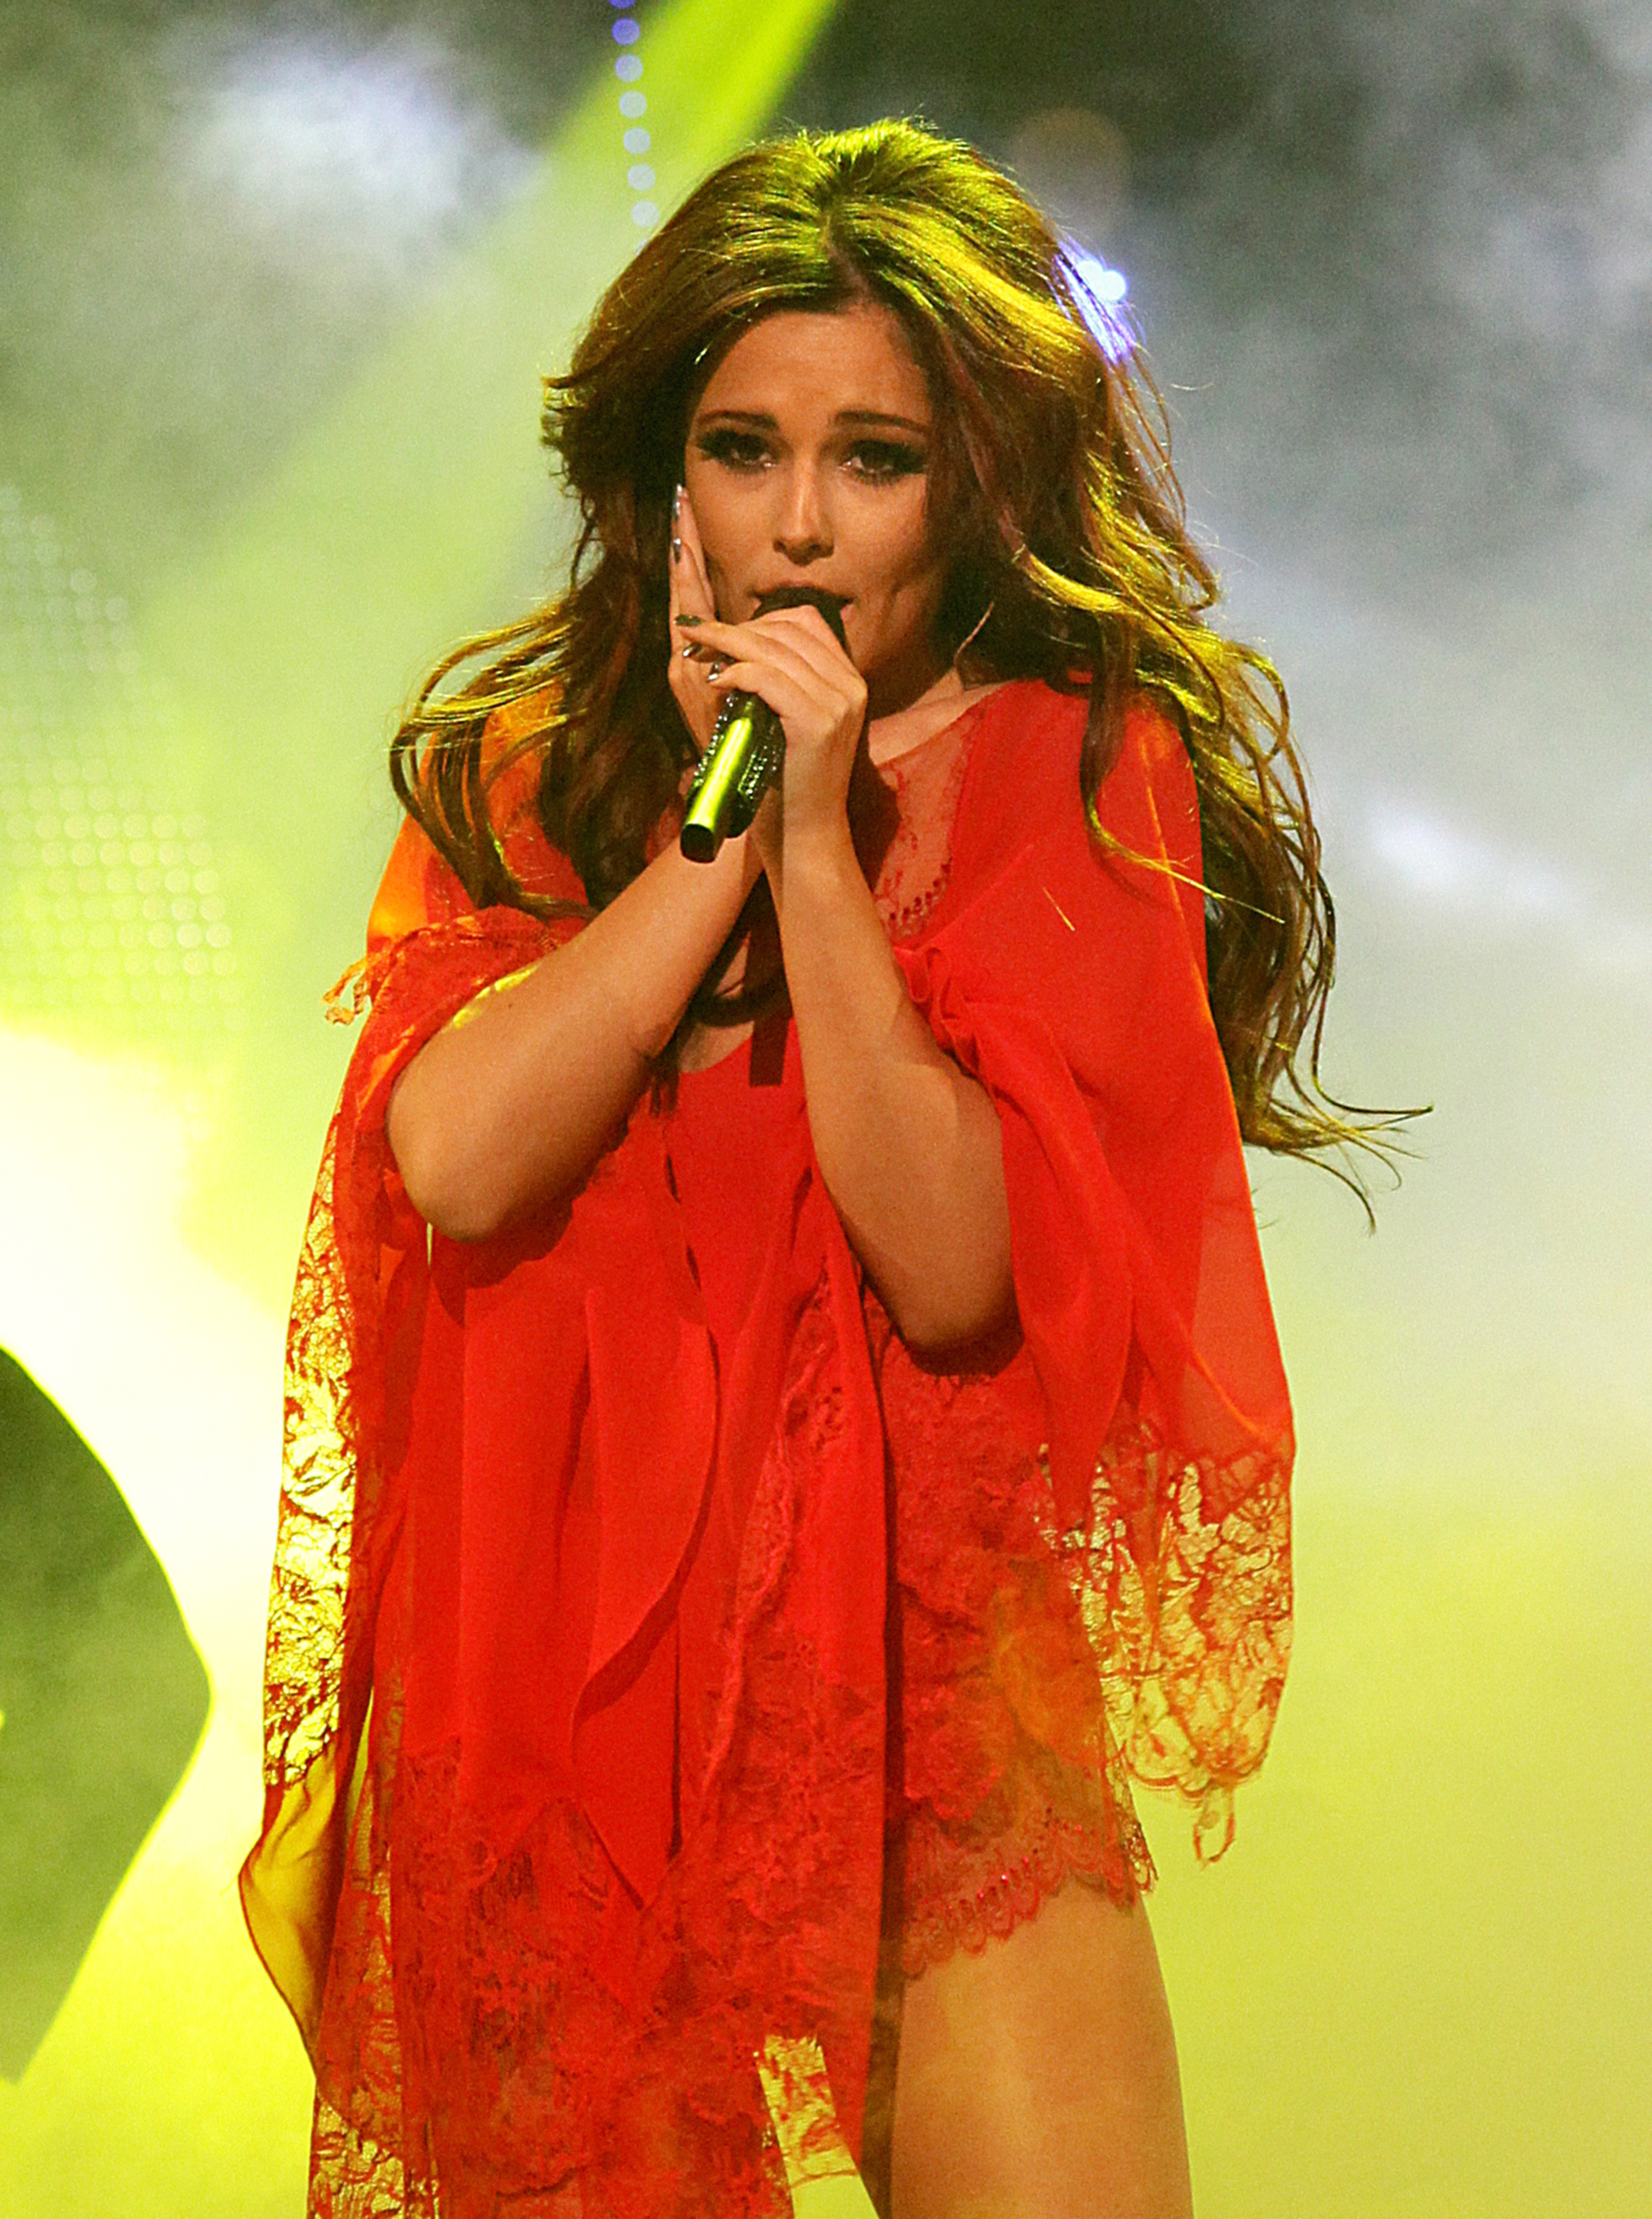 Cheryl Cole performs on stage during the BBC Children In Need Appeal 2010